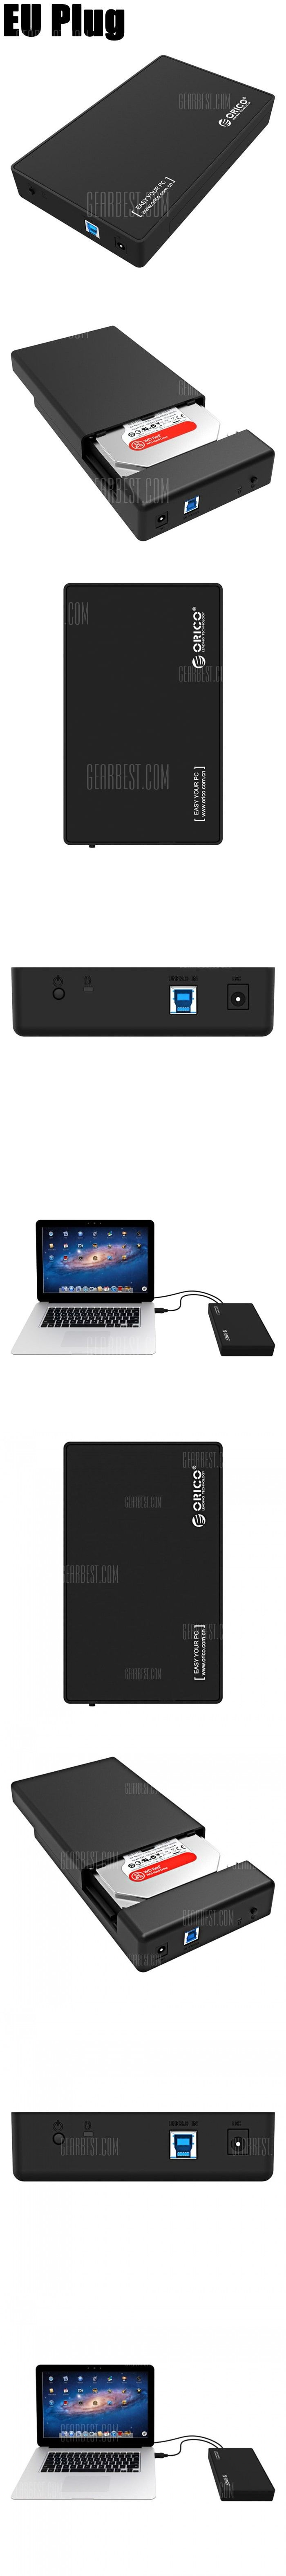 50 Best Orico Images On Pinterest In 2018 U2 Cable And Cabo 3569s3 35 Inch Hdd Enclosure